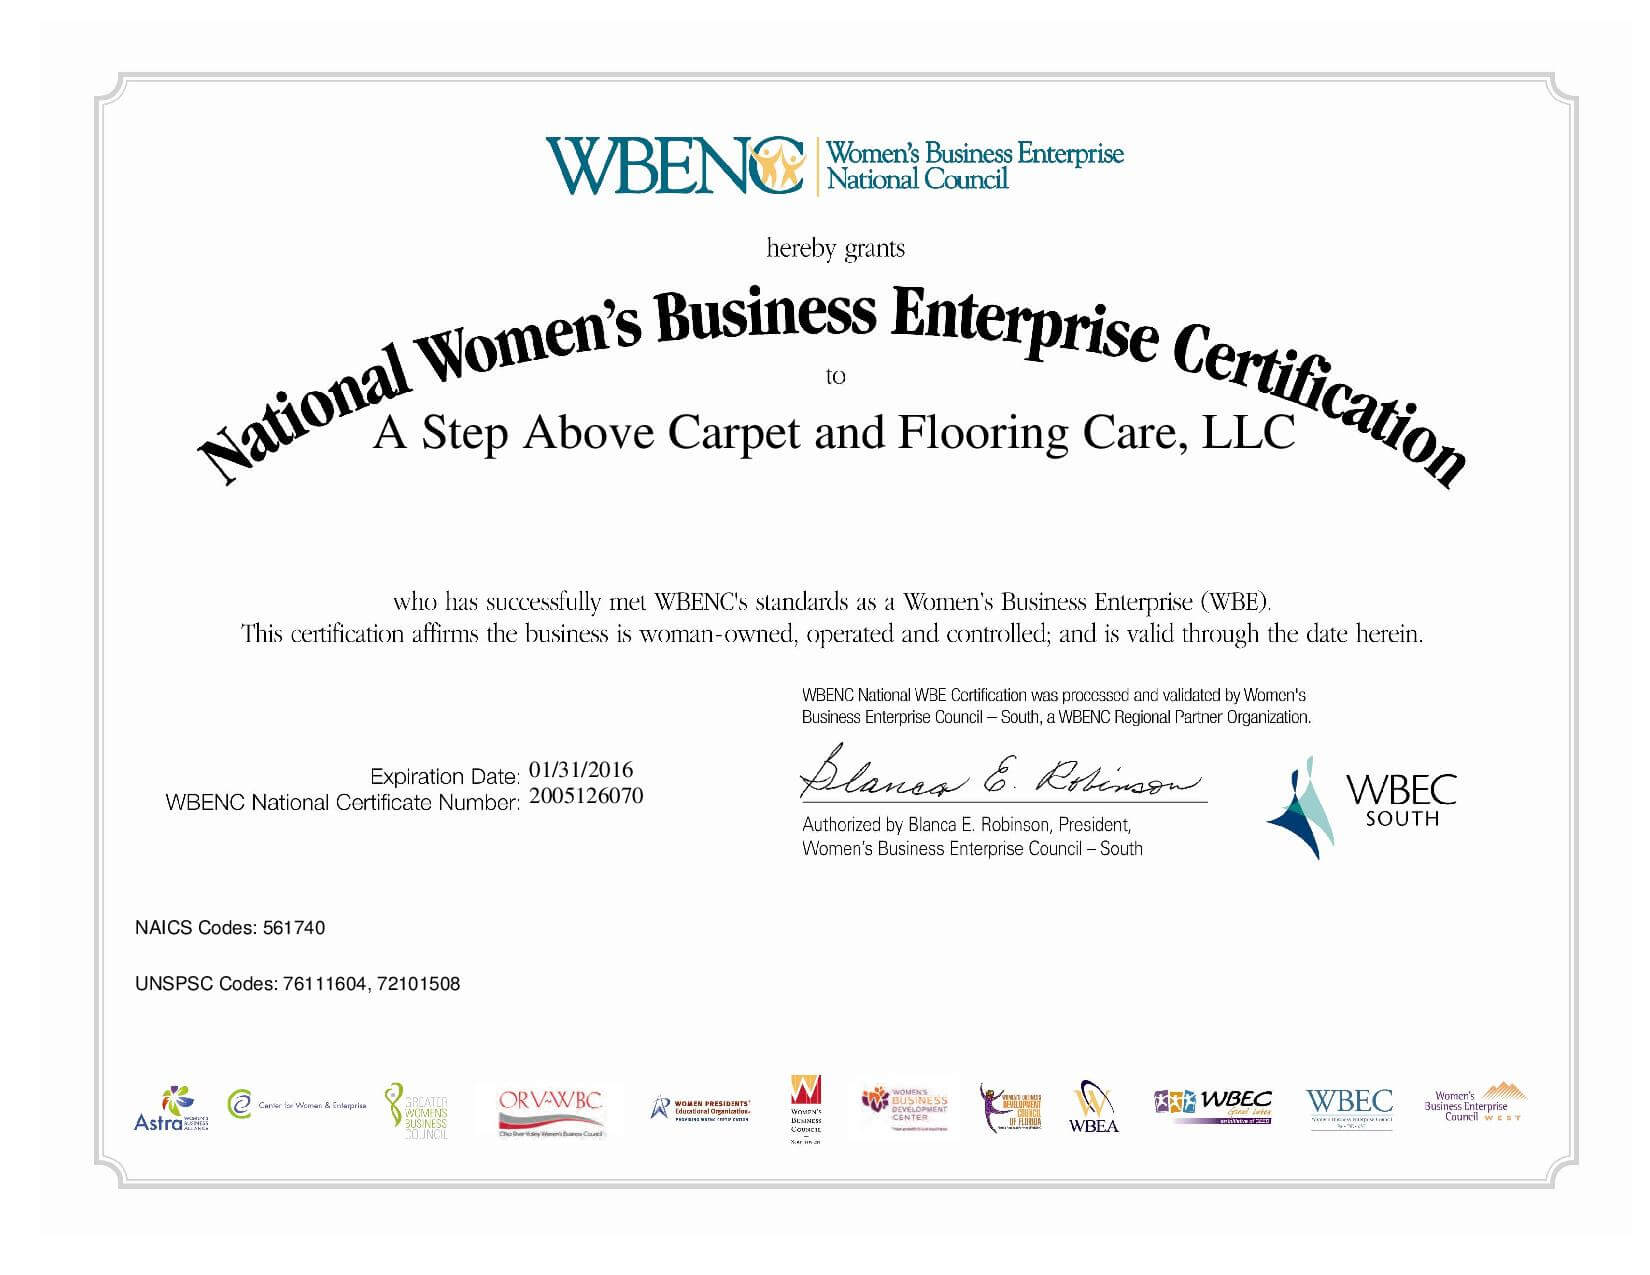 Wbenc Certification A Step Above Carpet And Flooring Care